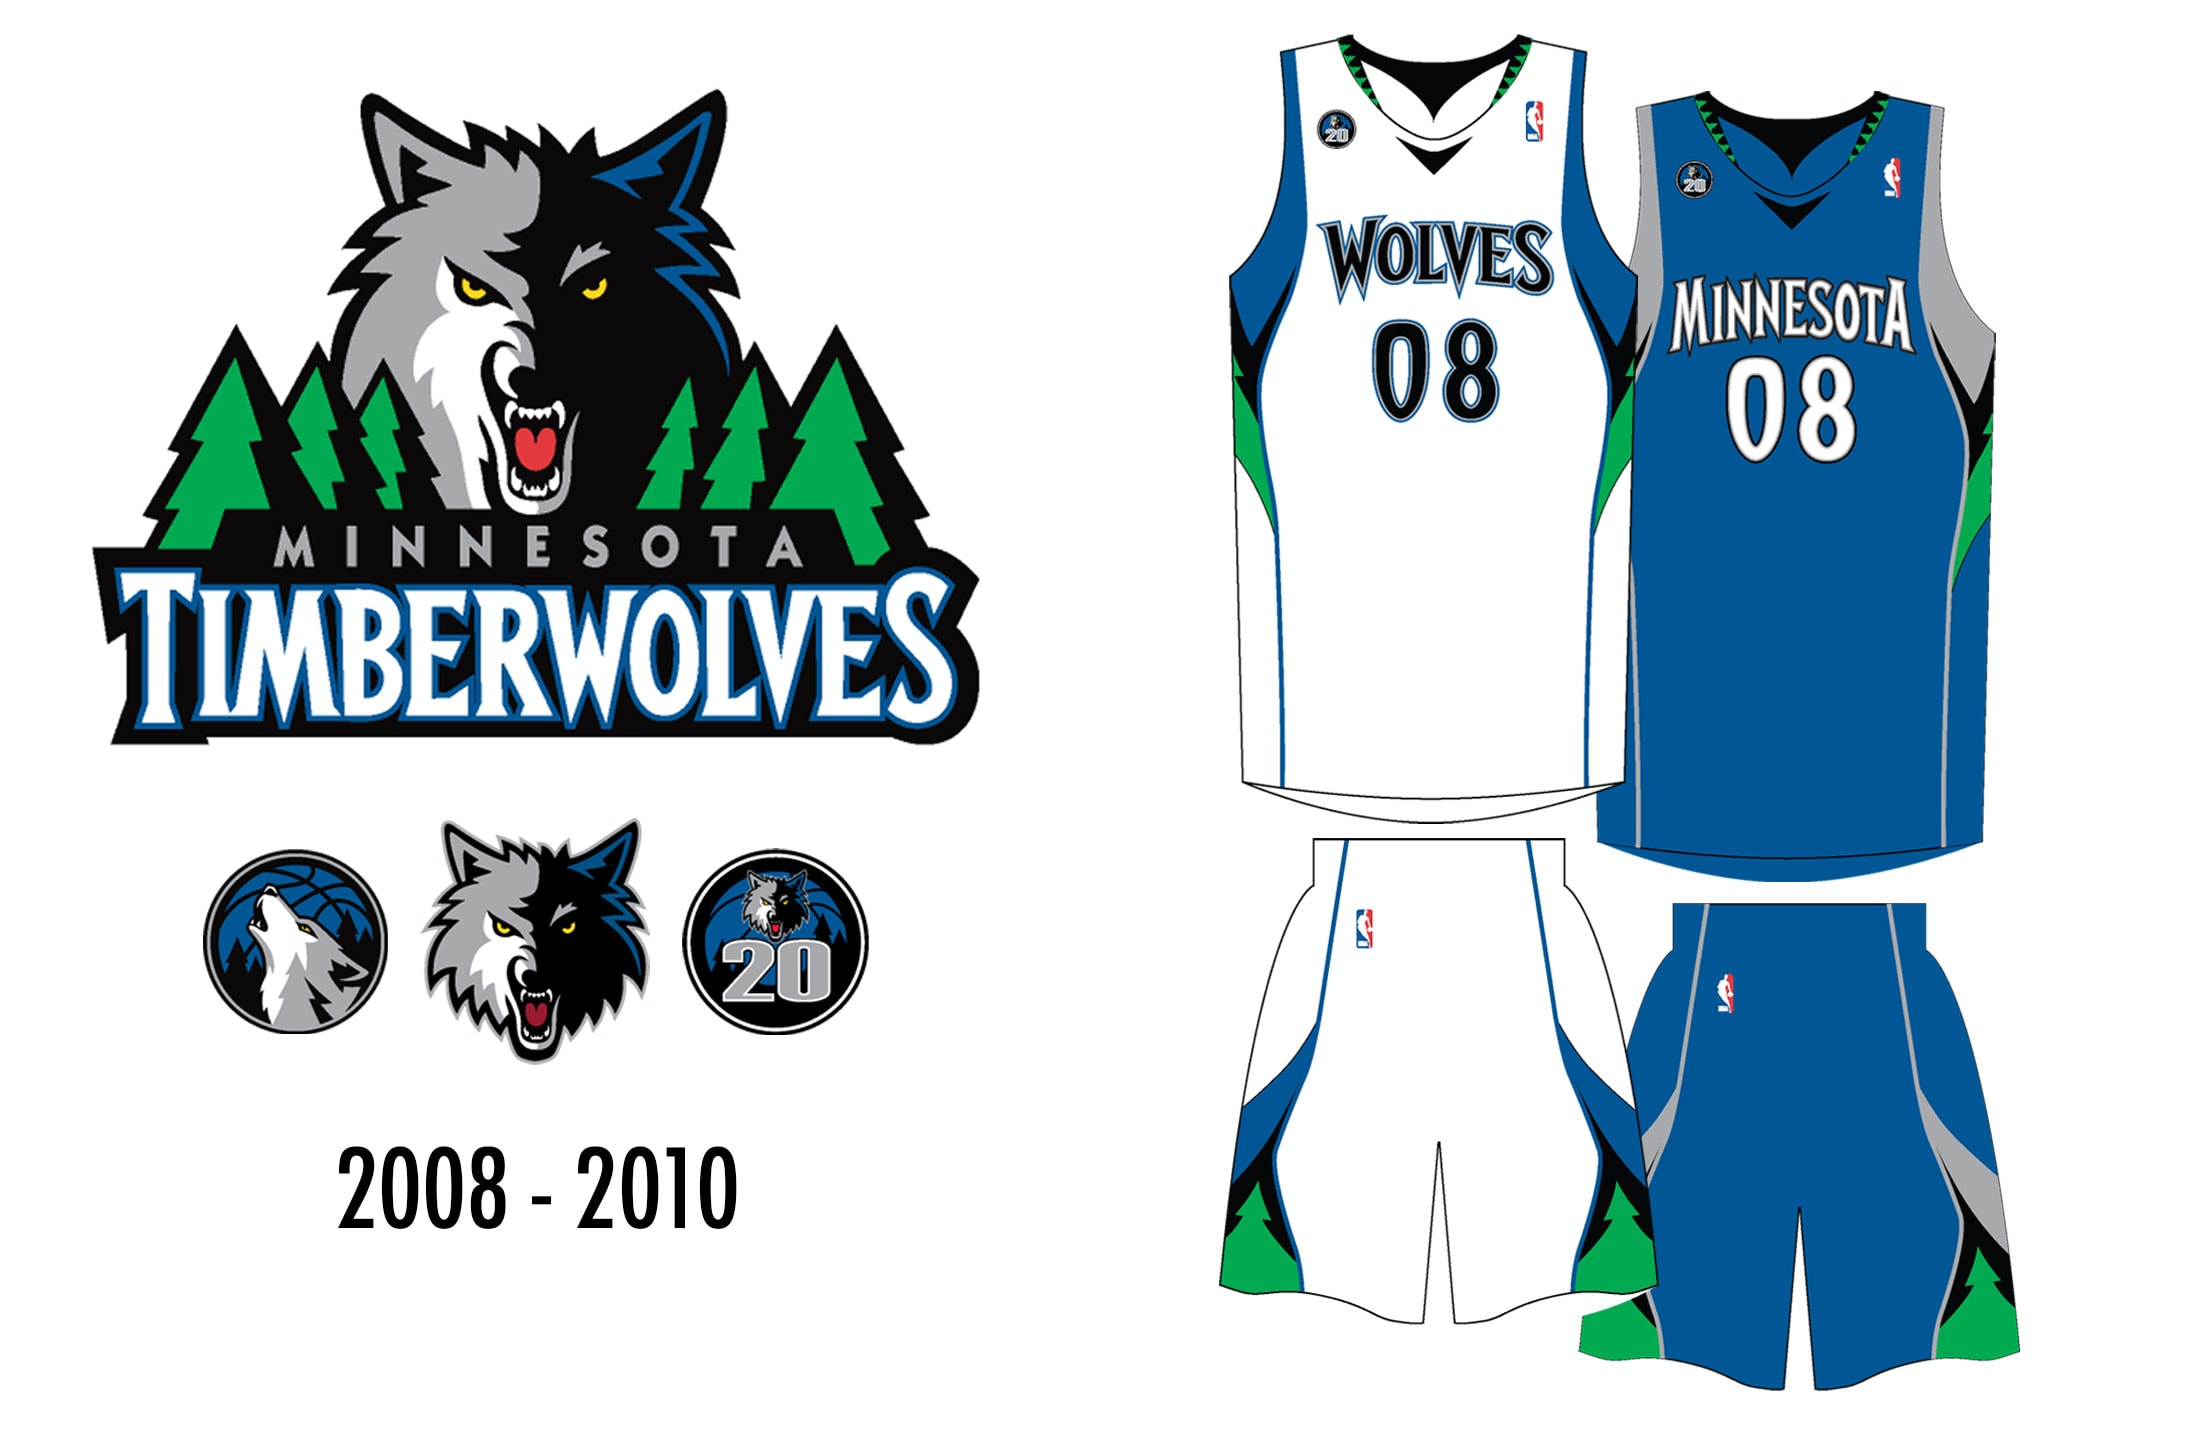 old timberwolves jersey